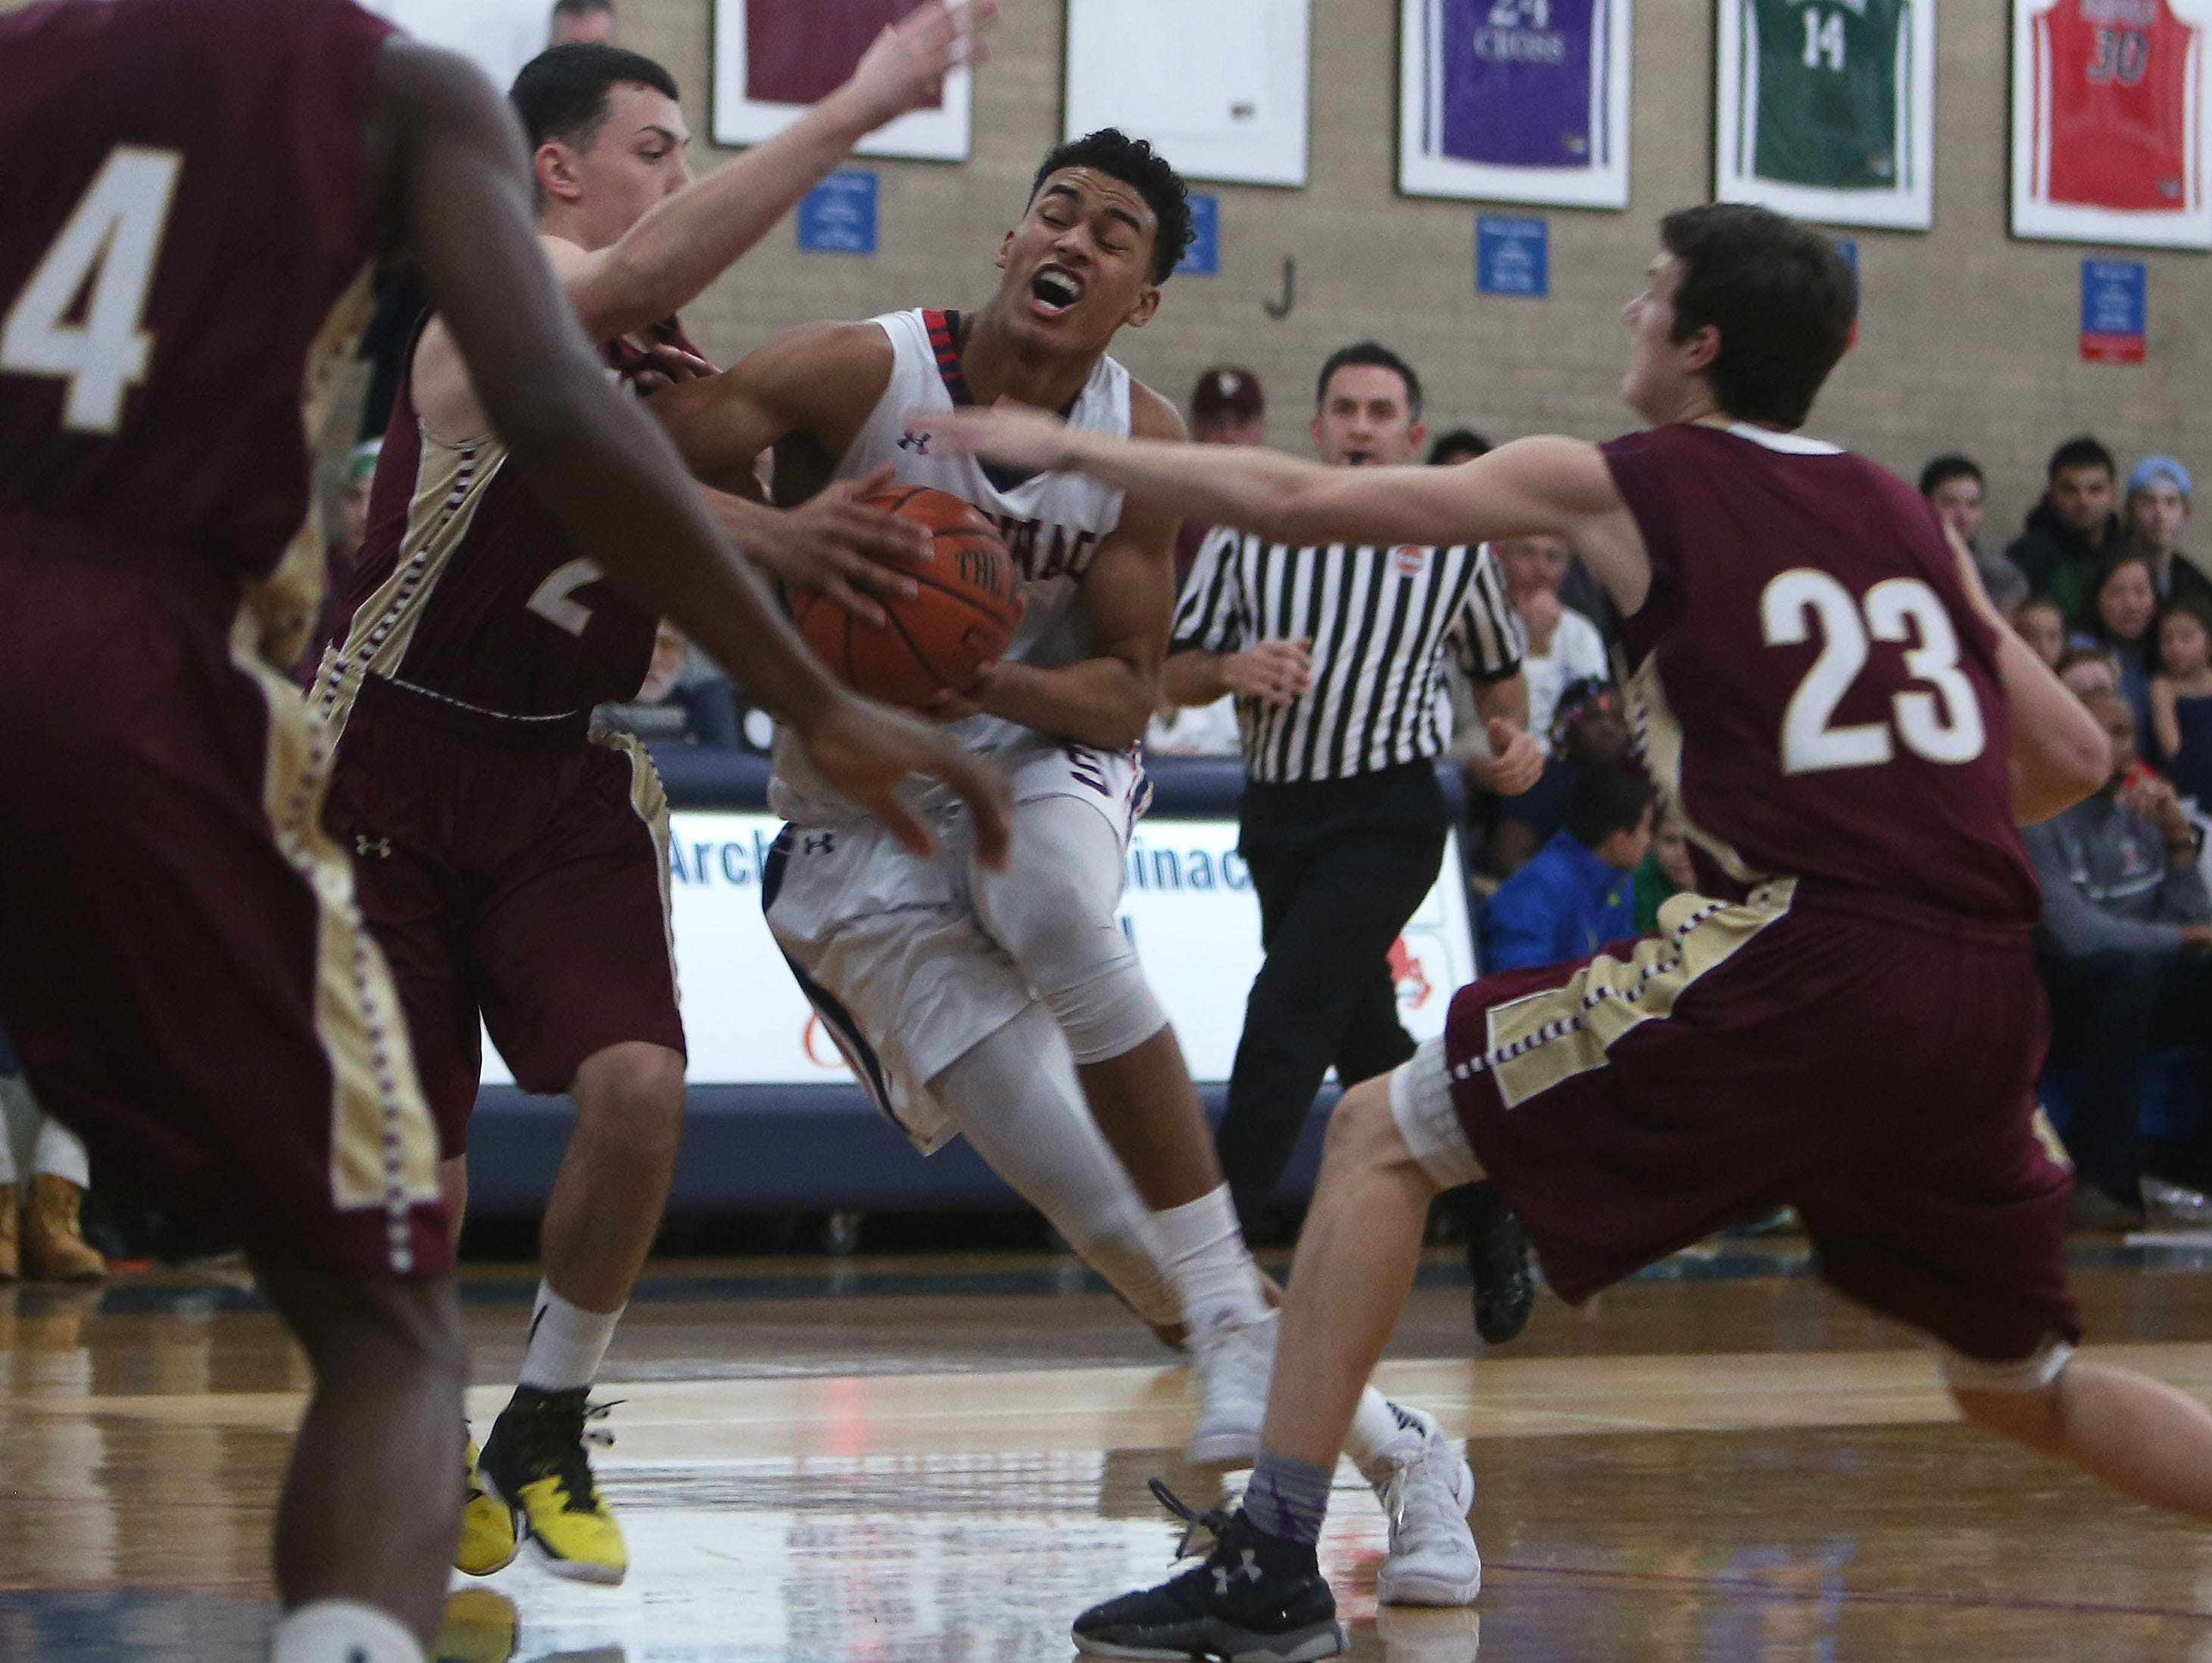 Stepinac's Jordan Tucker (5) drives to the basket while covered by Iona's Jon Brennen (2) and Patrick Flemming (23) during boys basketball action at Archbishop Stepinac High School in White Plains Jan. 8, 2016.